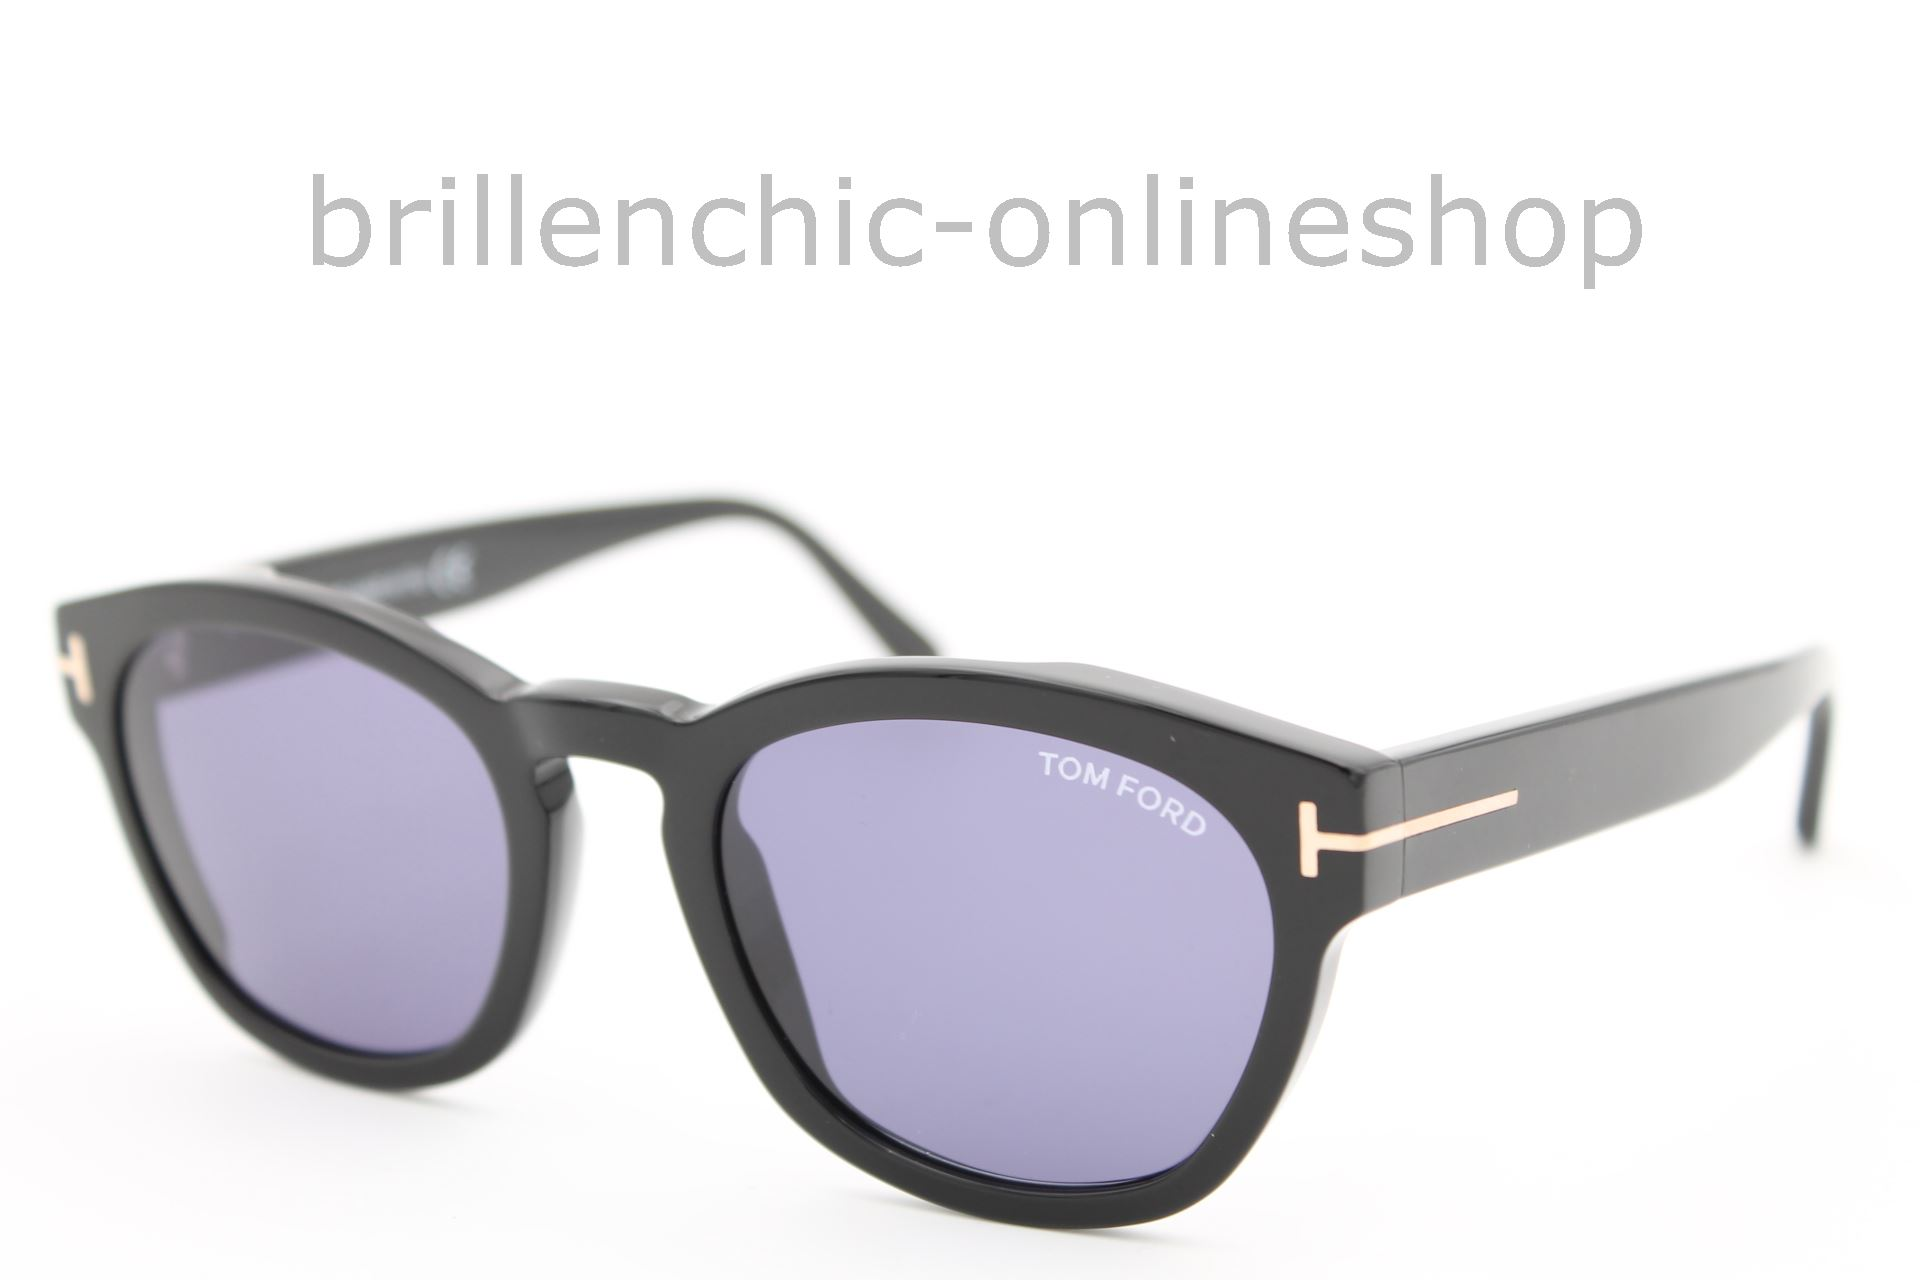 f7f4319901fac Brillenchic-onlineshop in Berlin - TOM FORD TF 590 01V BRYAN 02